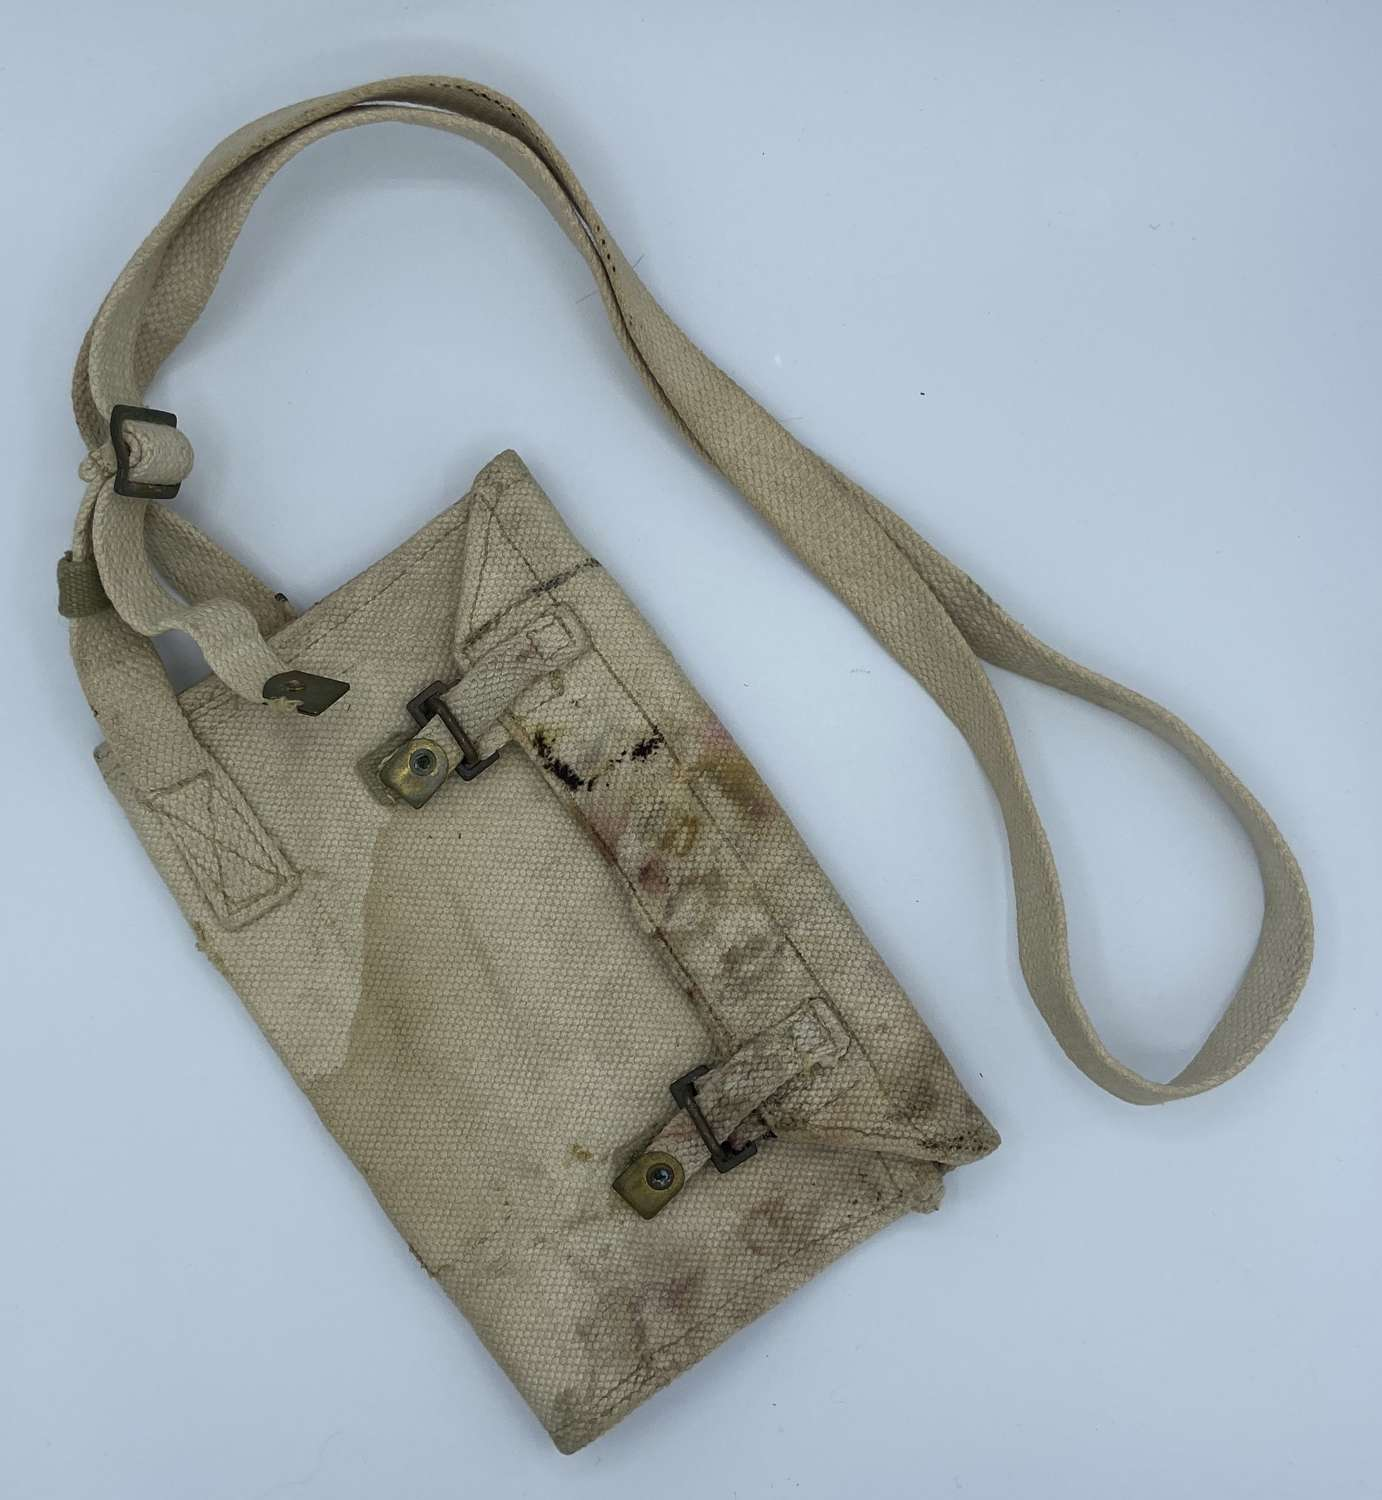 Adapted Ww2 1944 Date British Army Bren Tool Roll Wallet & Long Strap